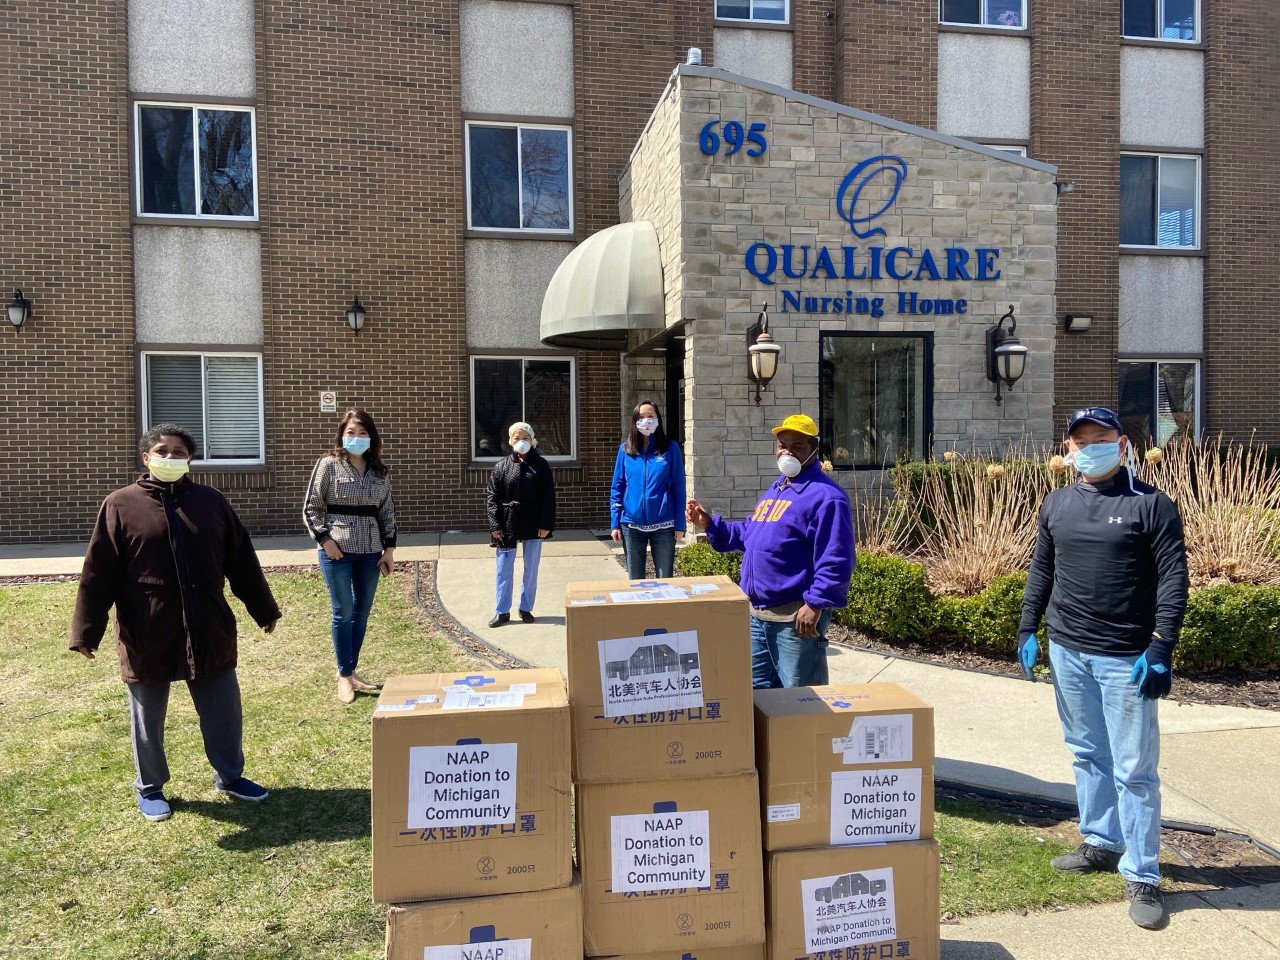 Michigan Chinese American Coalition donates face masks to help protect frontline hospital workers as COVID-19 spreads